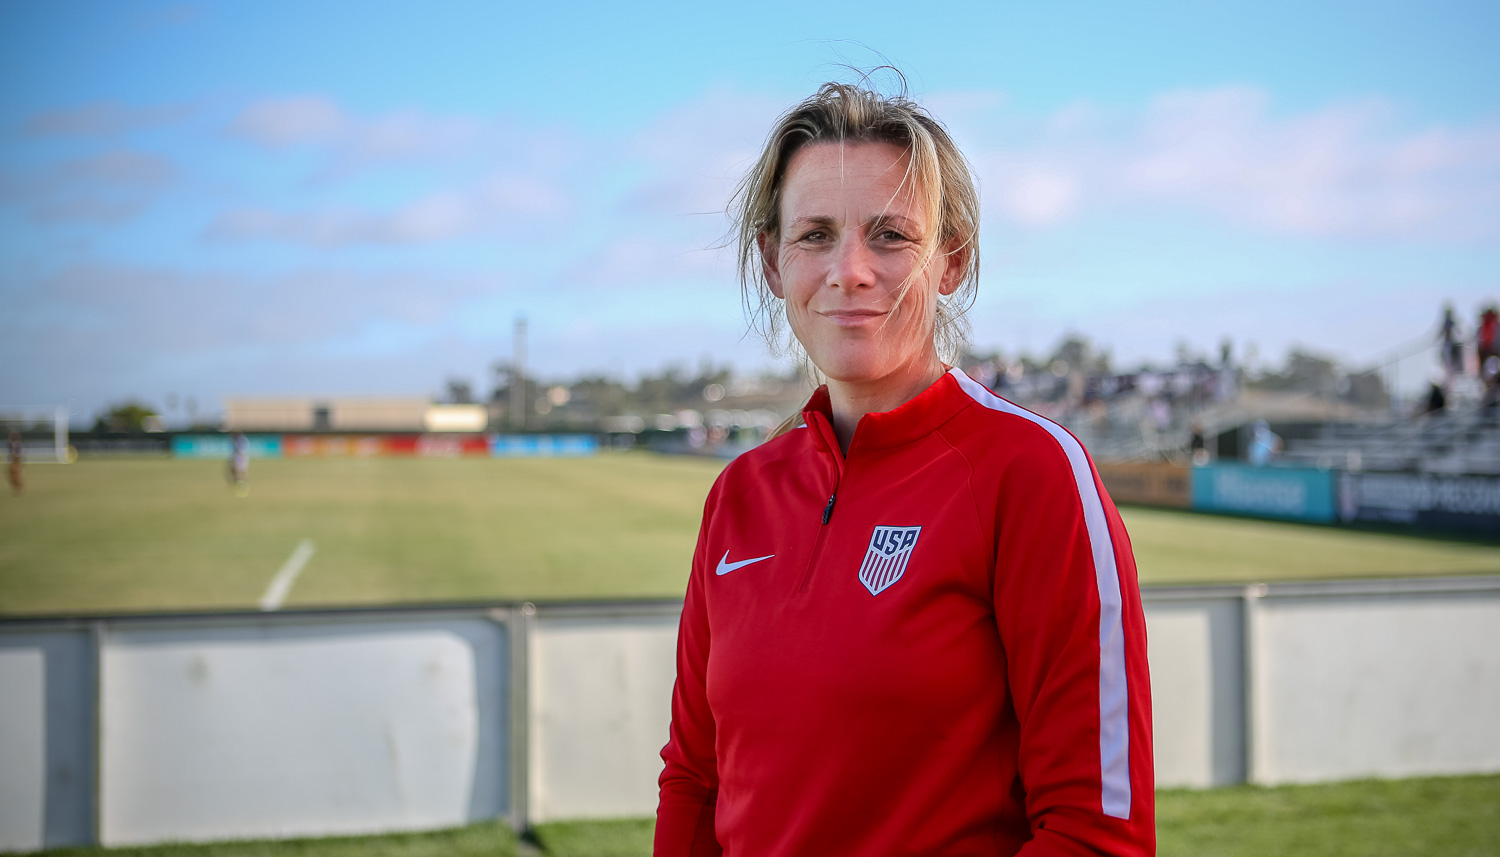 Scouting Players for the US National Team | #USSDA #WomensWorldCup